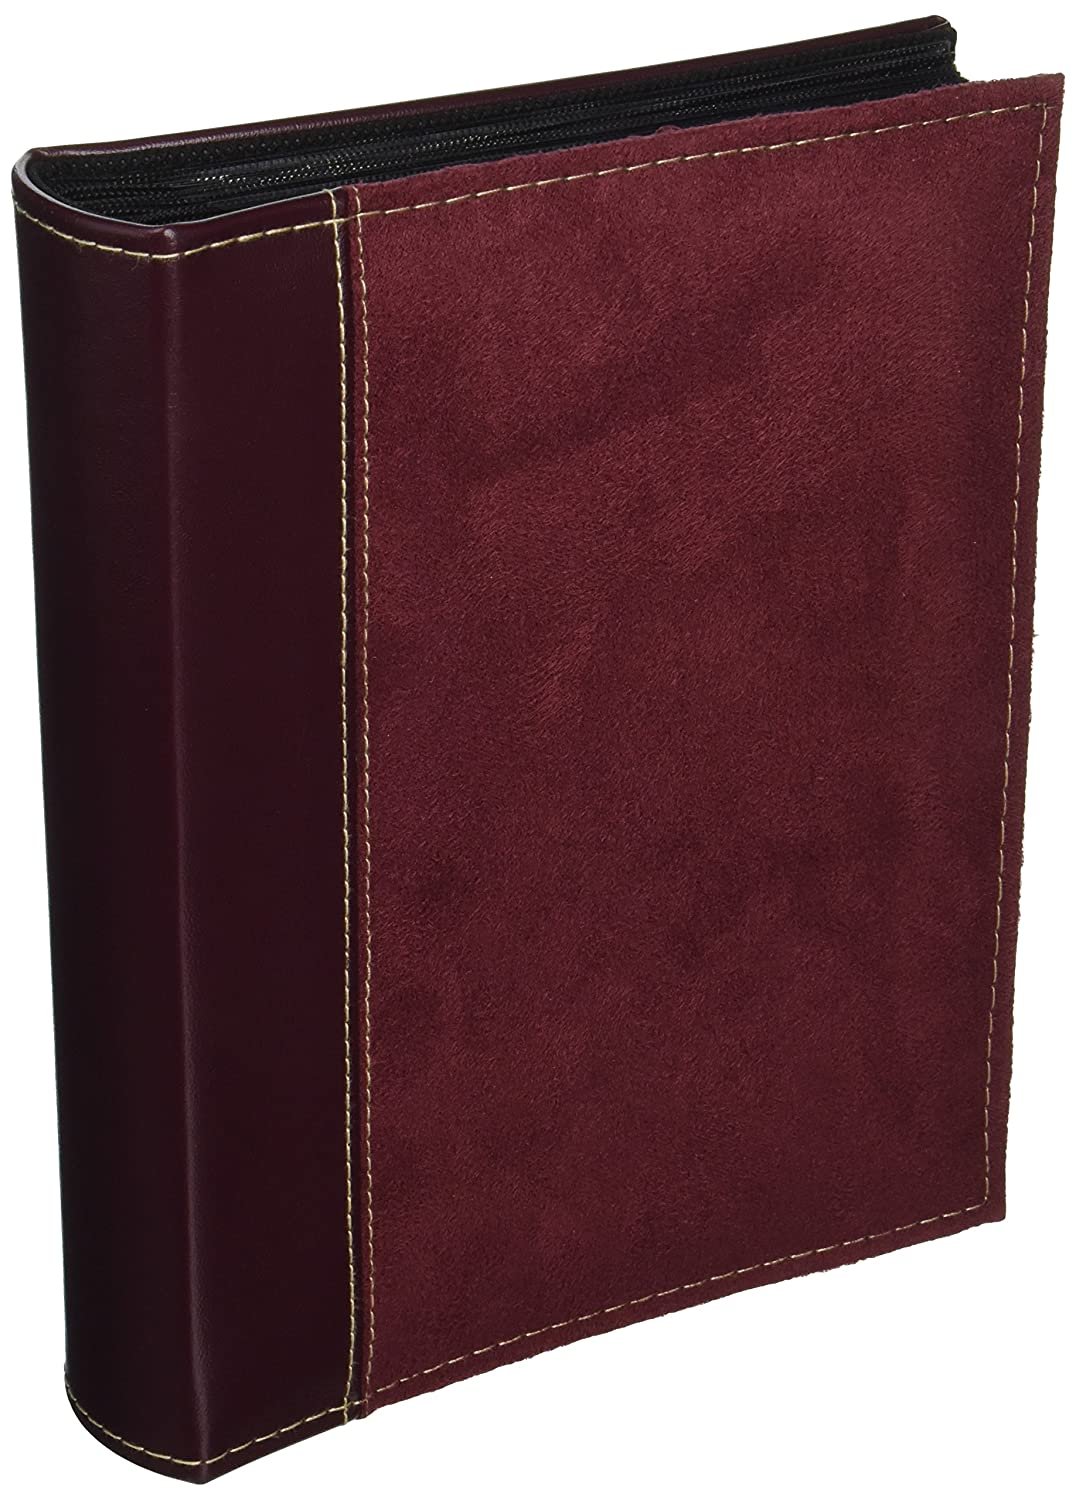 Pioneer Photo Albums 208 Pocket Sewn Faux Suede and Leatherette Cover Album for 4 by 6-Inch Prints, Burgundy SU-246/BG